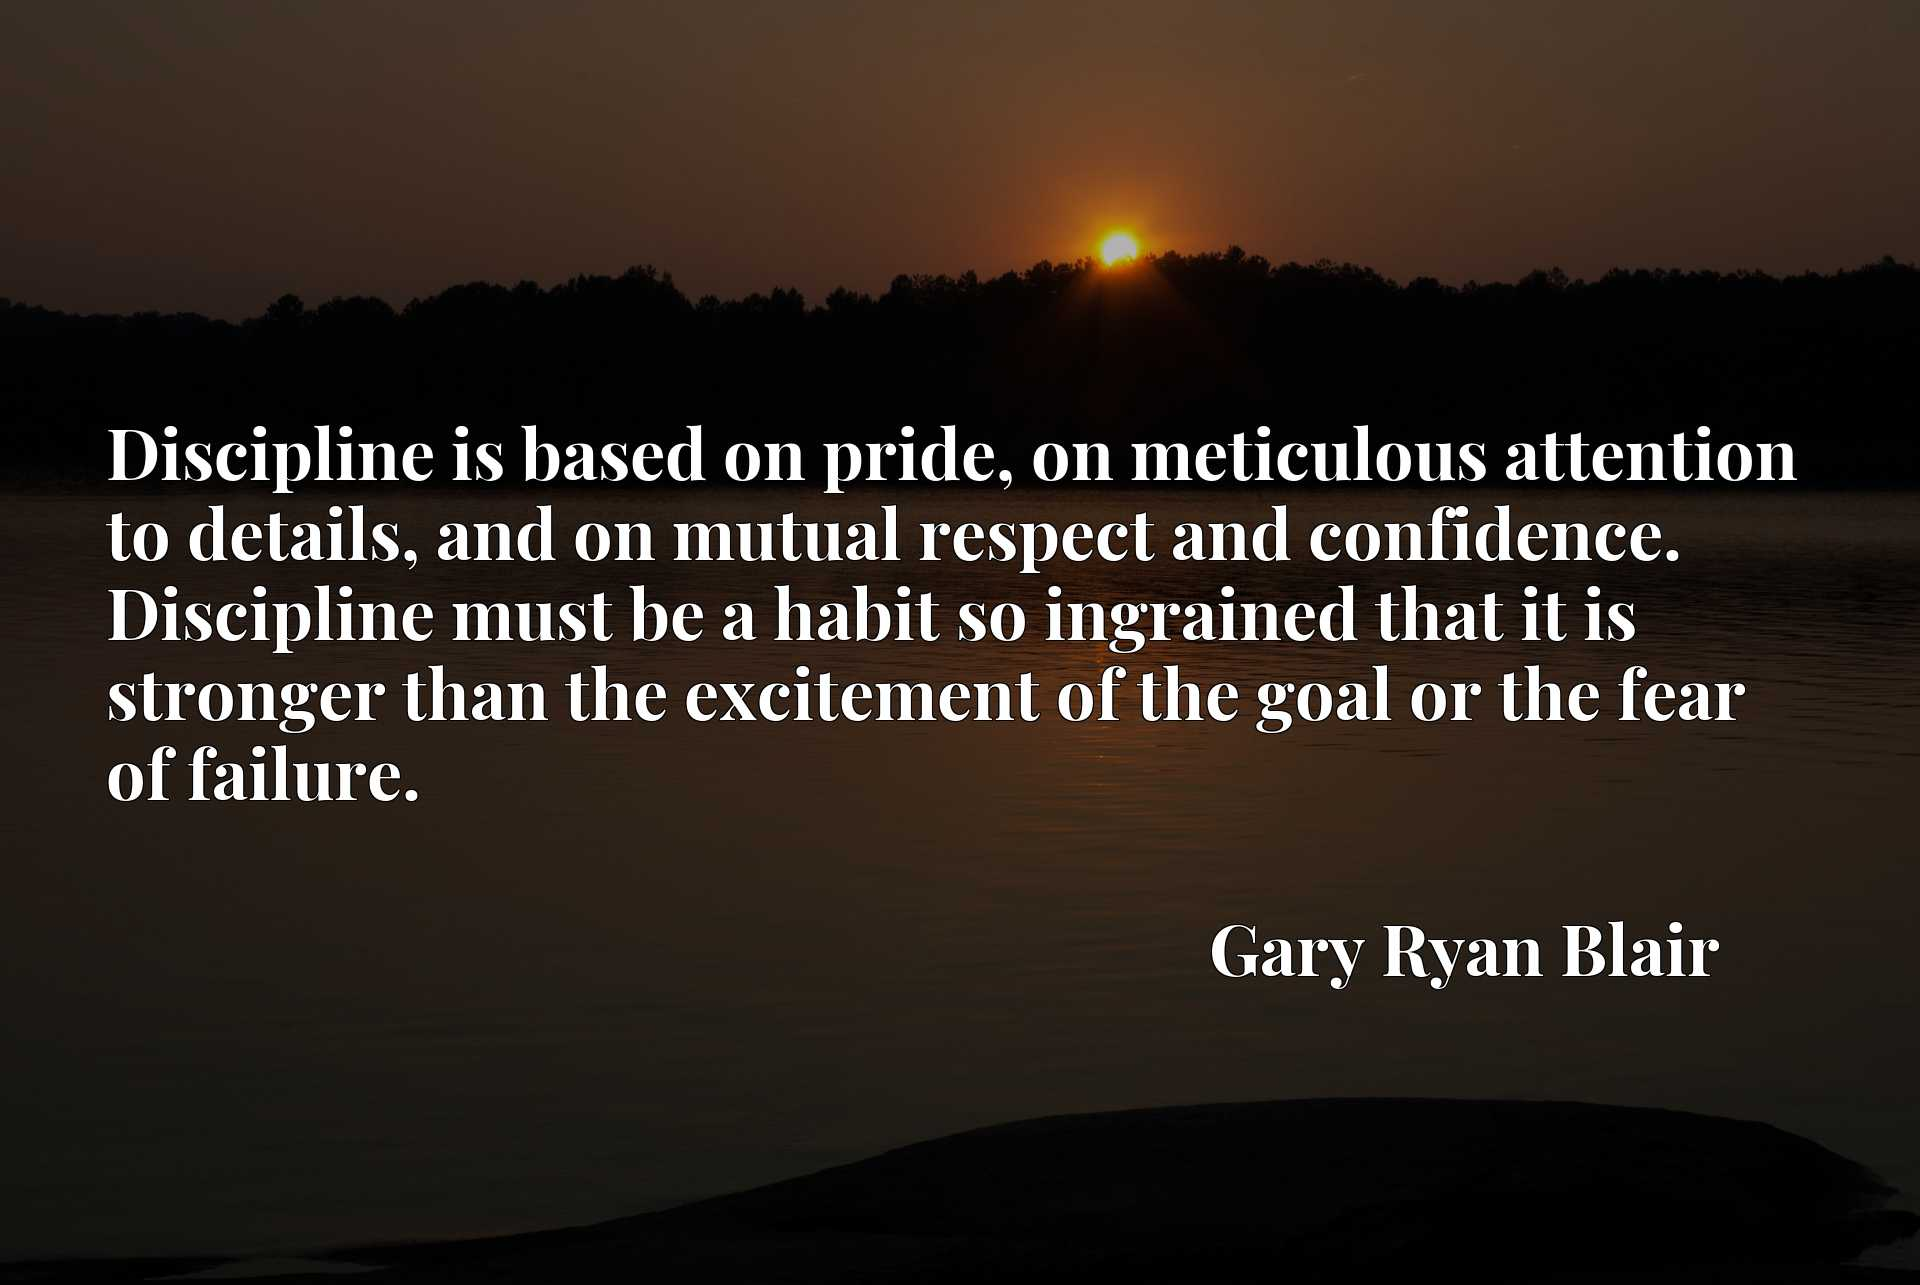 Discipline is based on pride, on meticulous attention to details, and on mutual respect and confidence. Discipline must be a habit so ingrained that it is stronger than the excitement of the goal or the fear of failure.